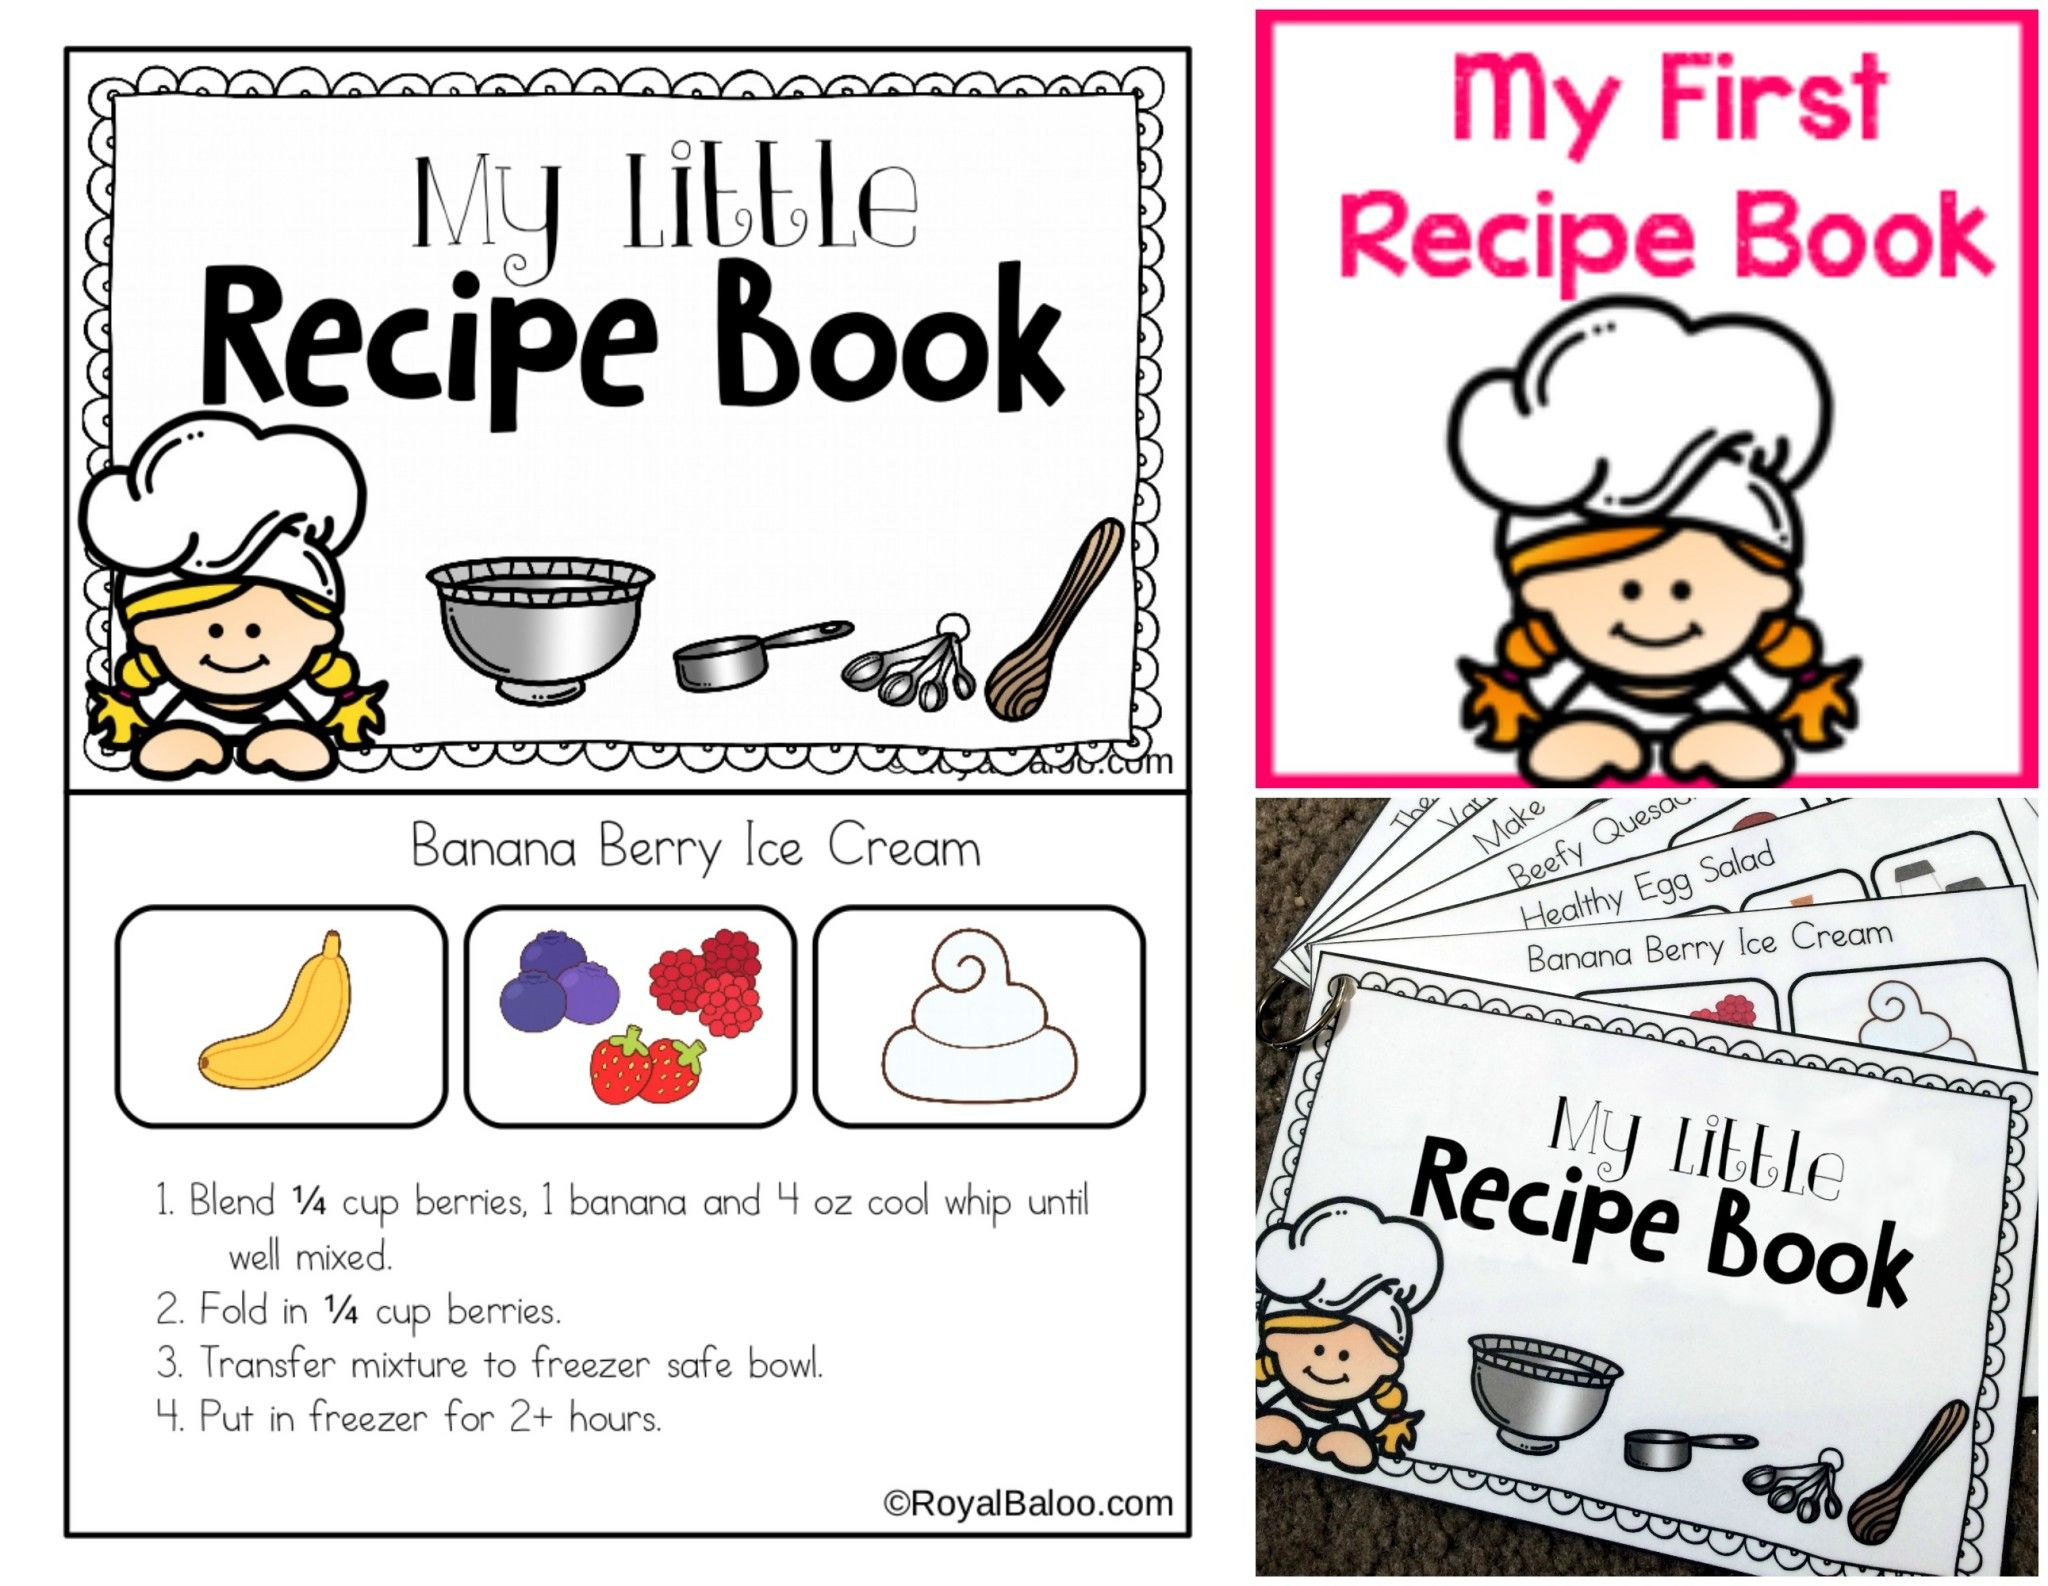 My First Recipe Book Printable